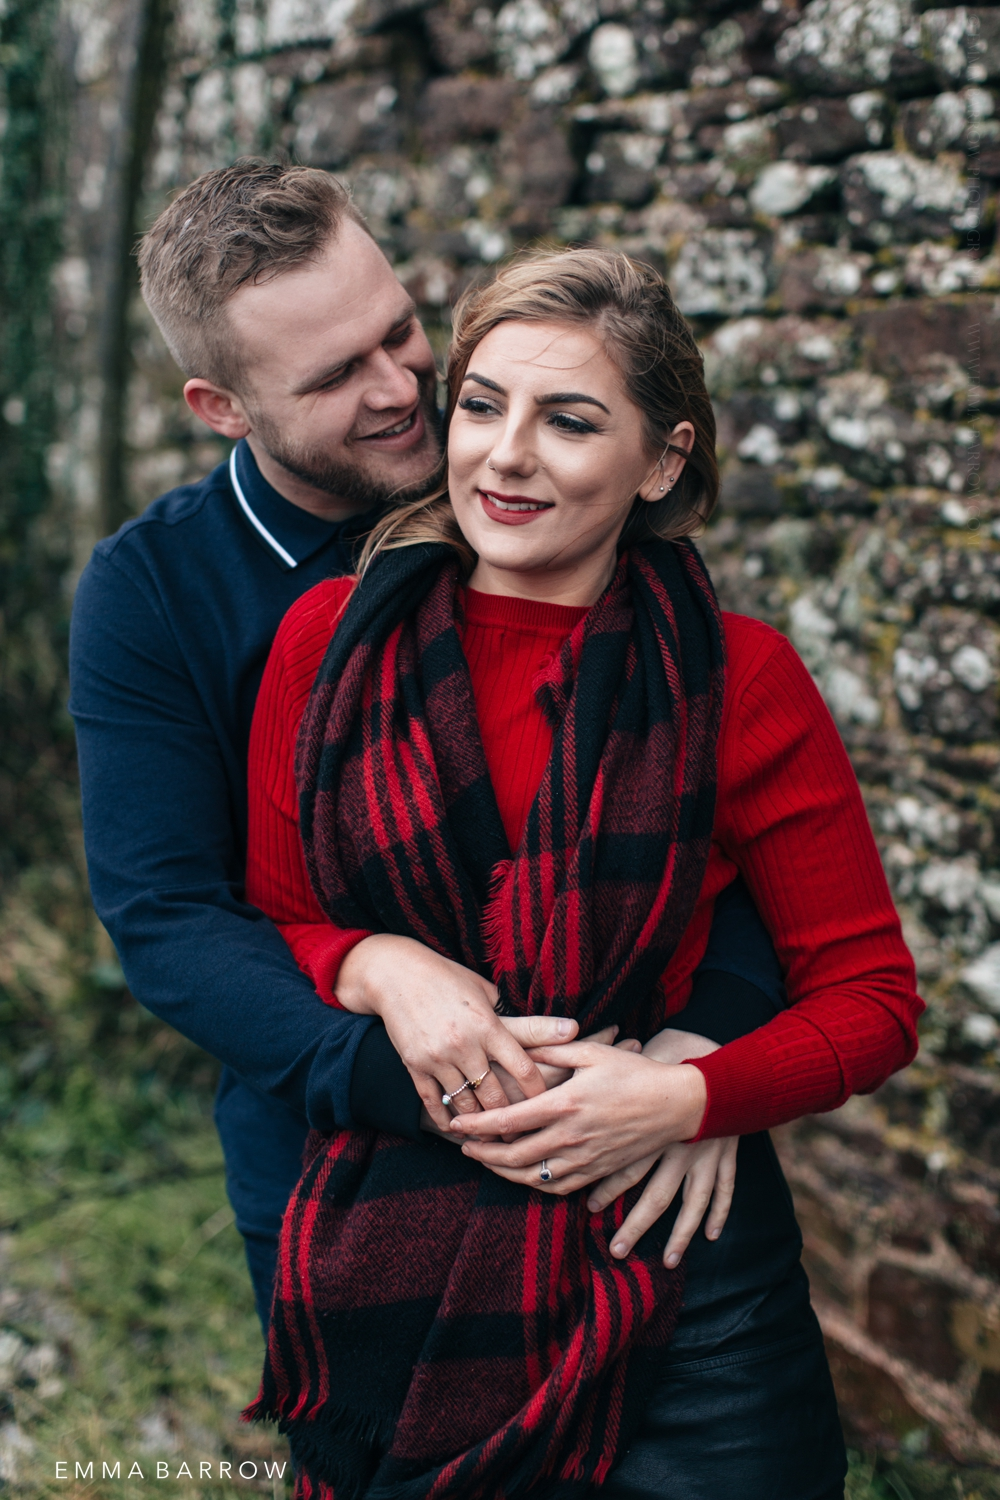 emmabarrow_laurenmattPreWed-14.jpg